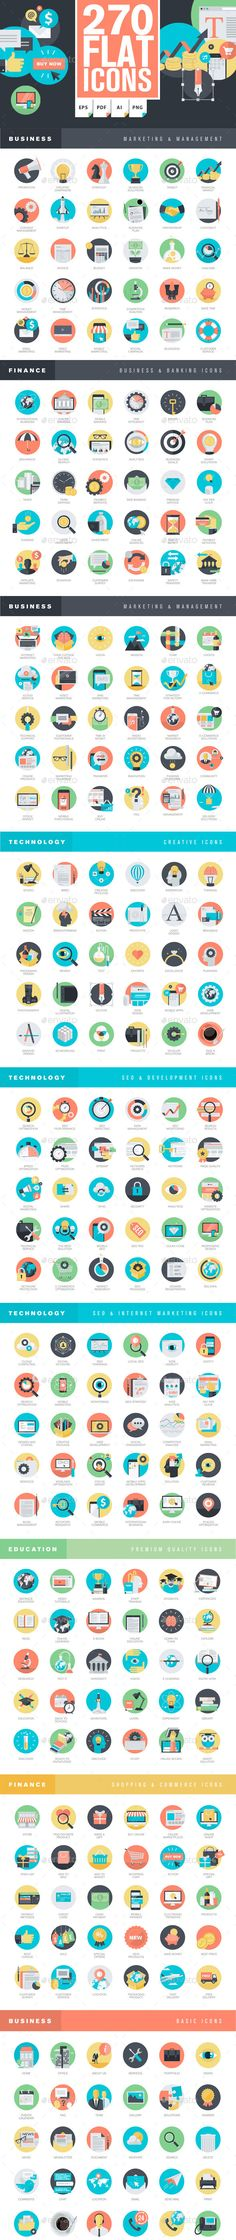 Business infographic : Set of 270 flat design icons for marketing business finance e-commerce web d Web Design Icon, Flat Design Icons, App Design, Logo Design, Design Ideas, Ecommerce, Social Design, Cv Online, Business Icon